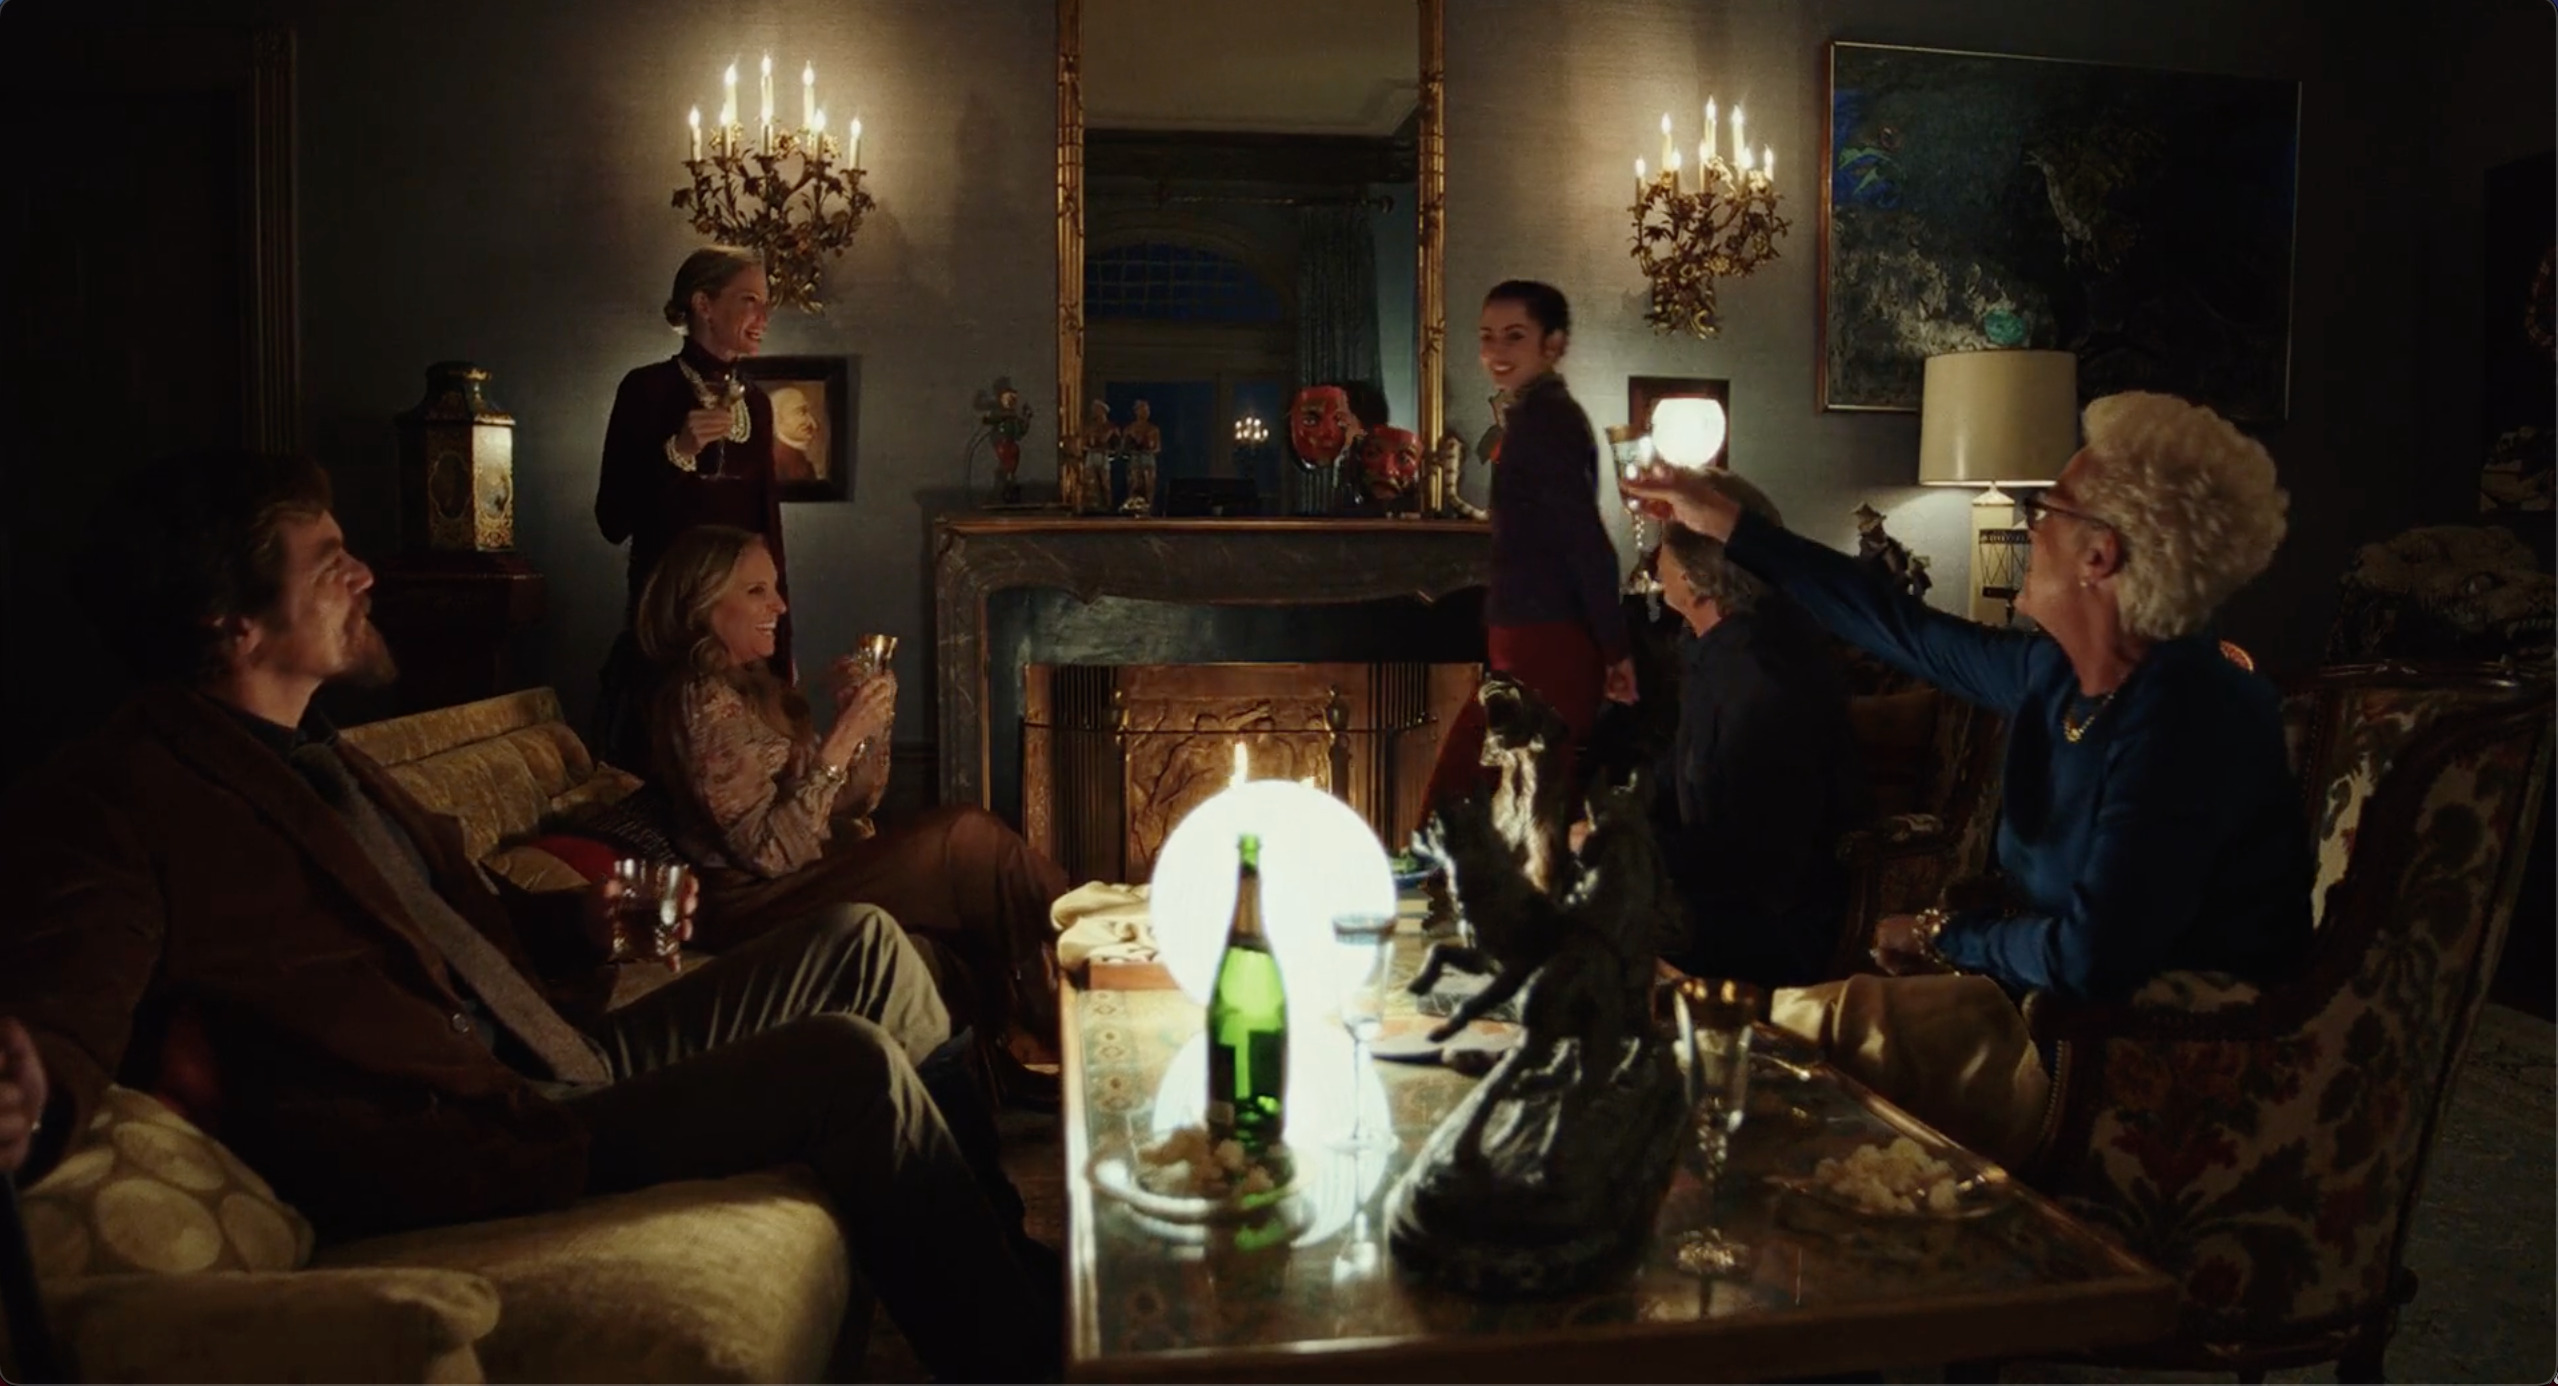 5 members of the Thrombey family appear to raise their drinks to Marta.